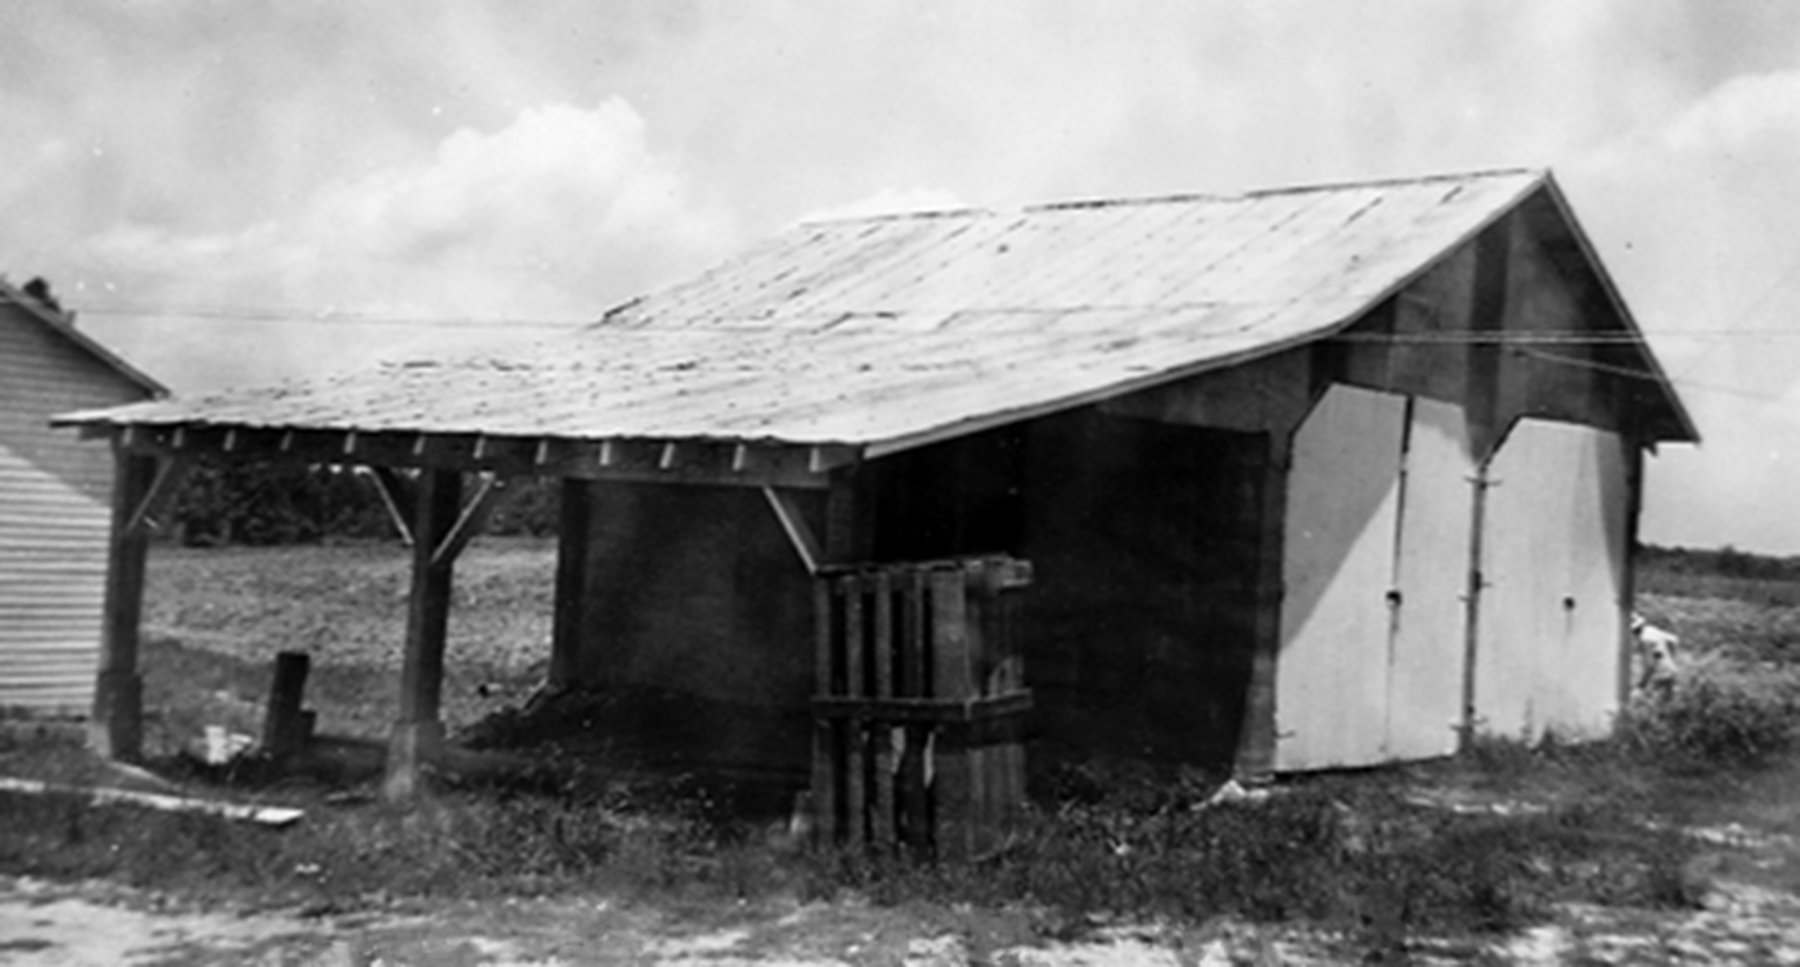 Blythewood School bus shed about 1932.  Photo courtesy of SC. Department of Archives and History.